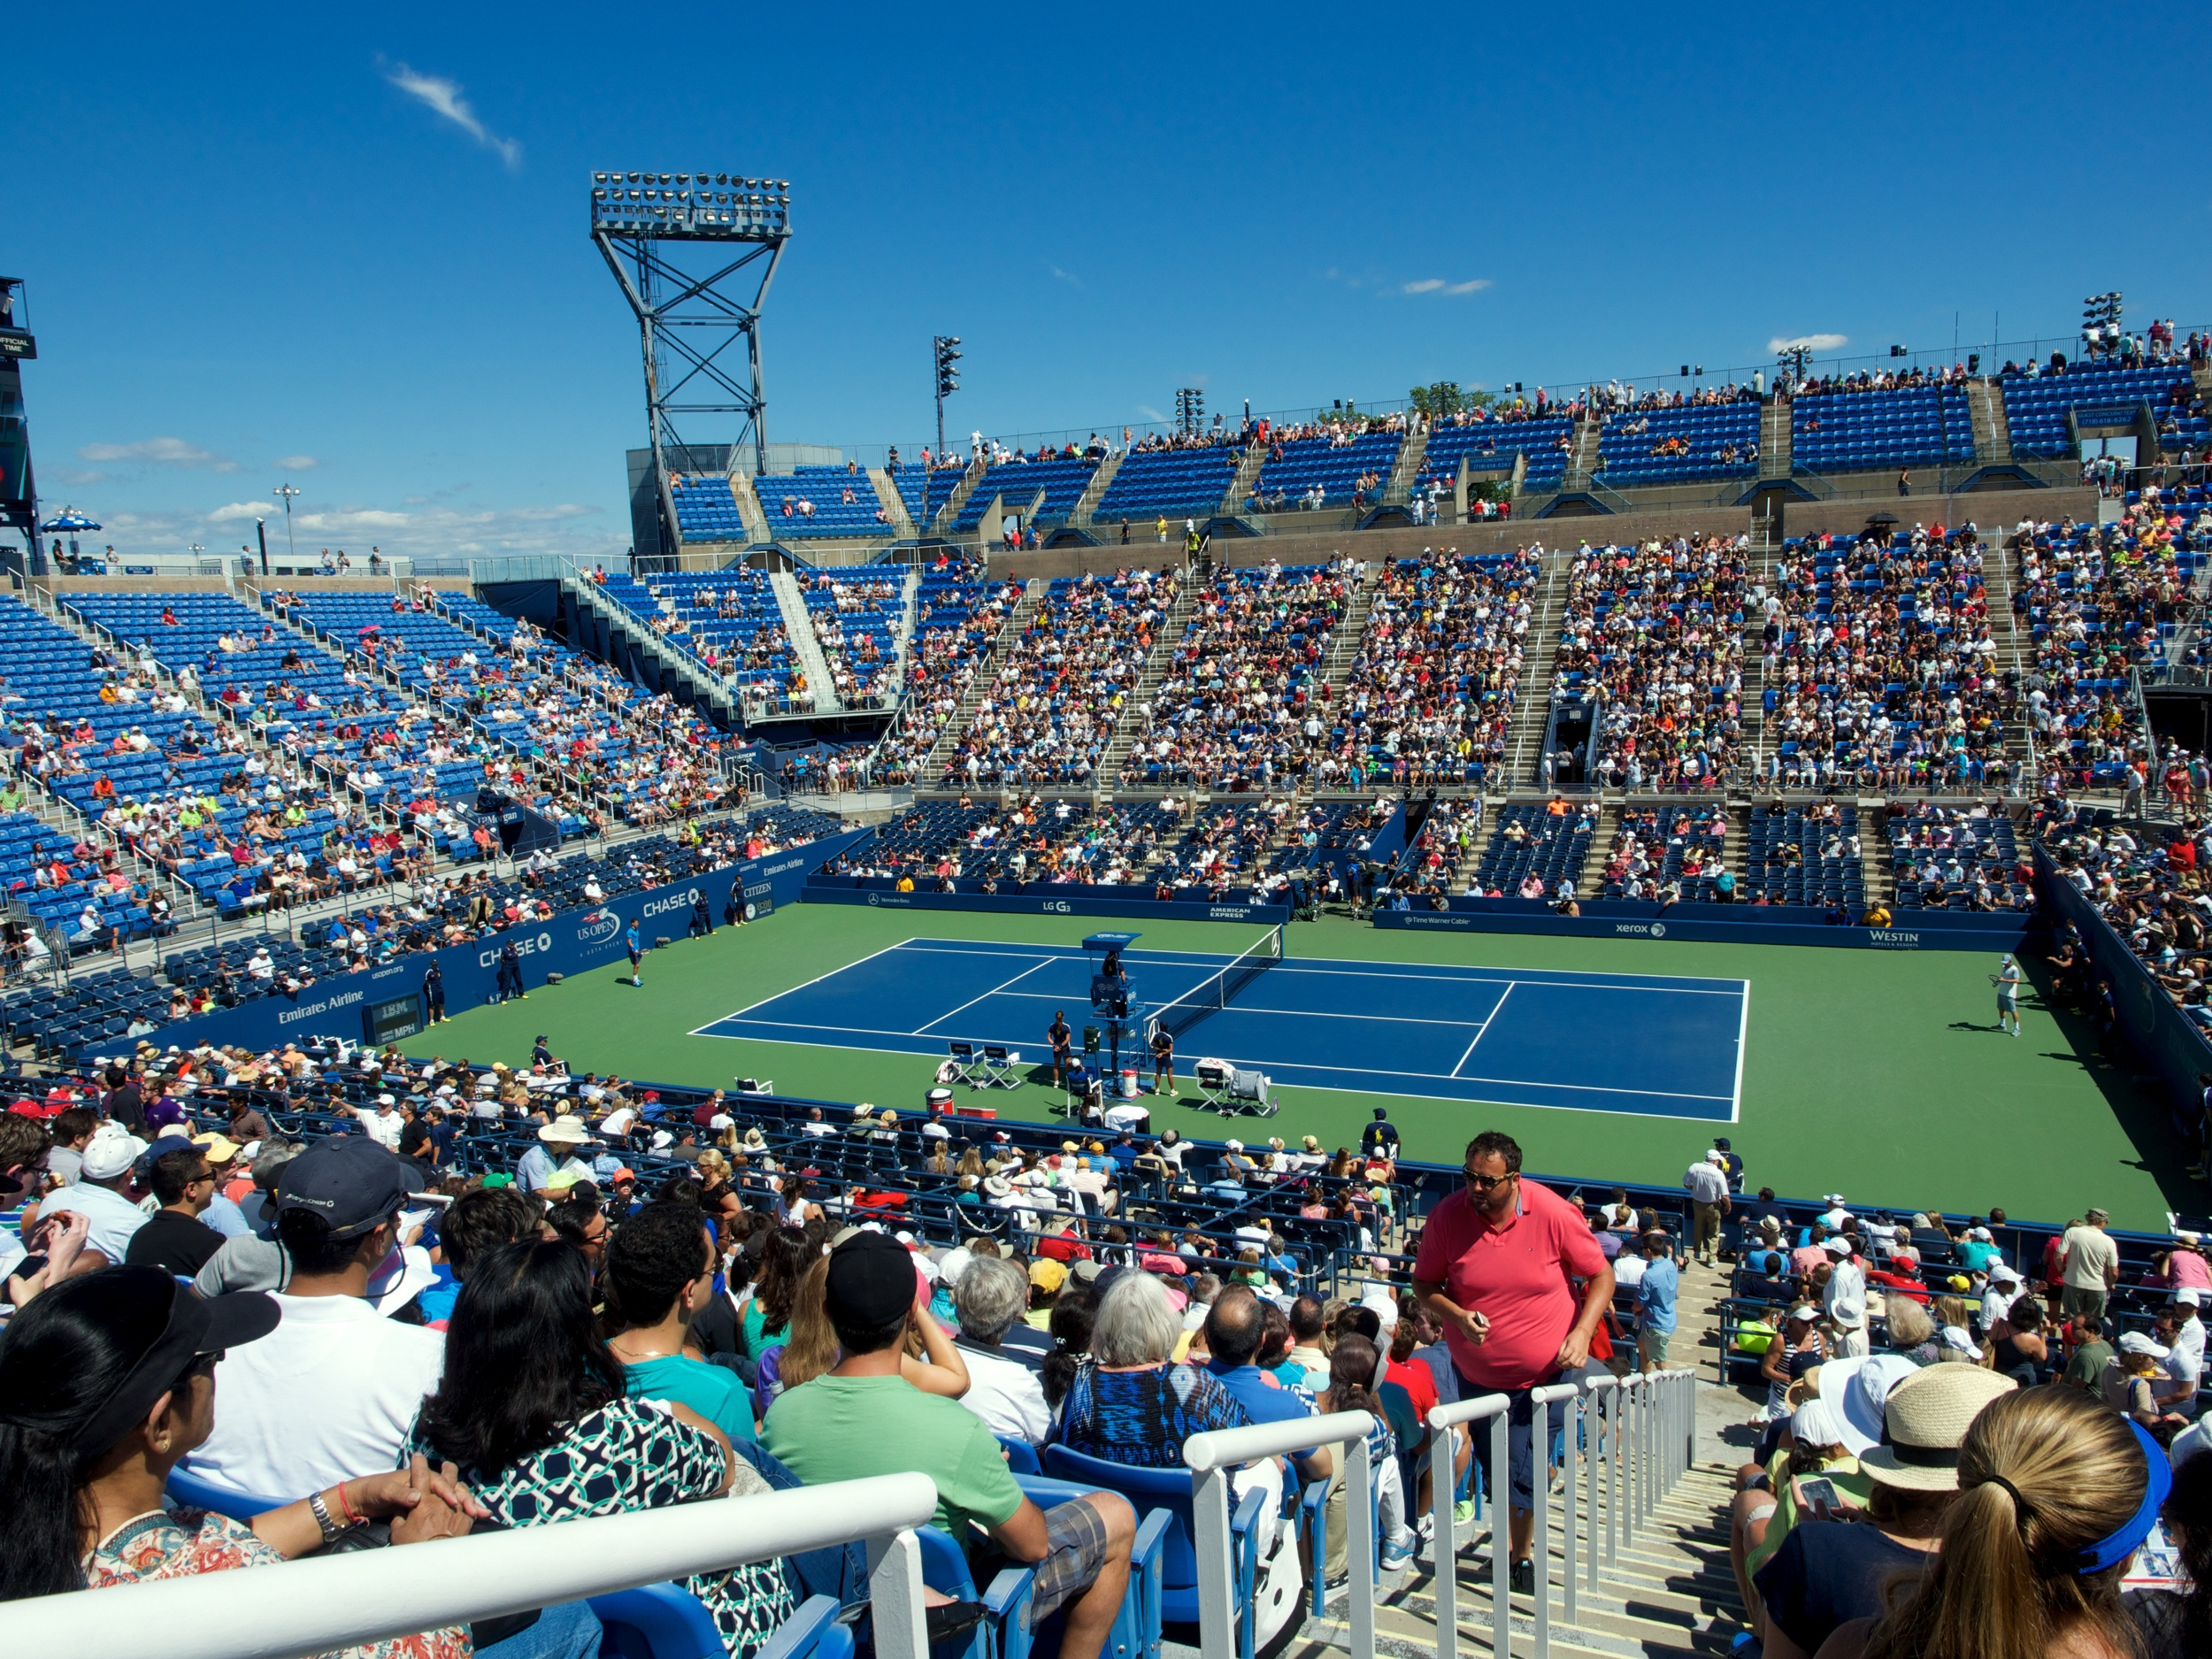 Louis Armstrong Stadium at the US Open Tennis Center